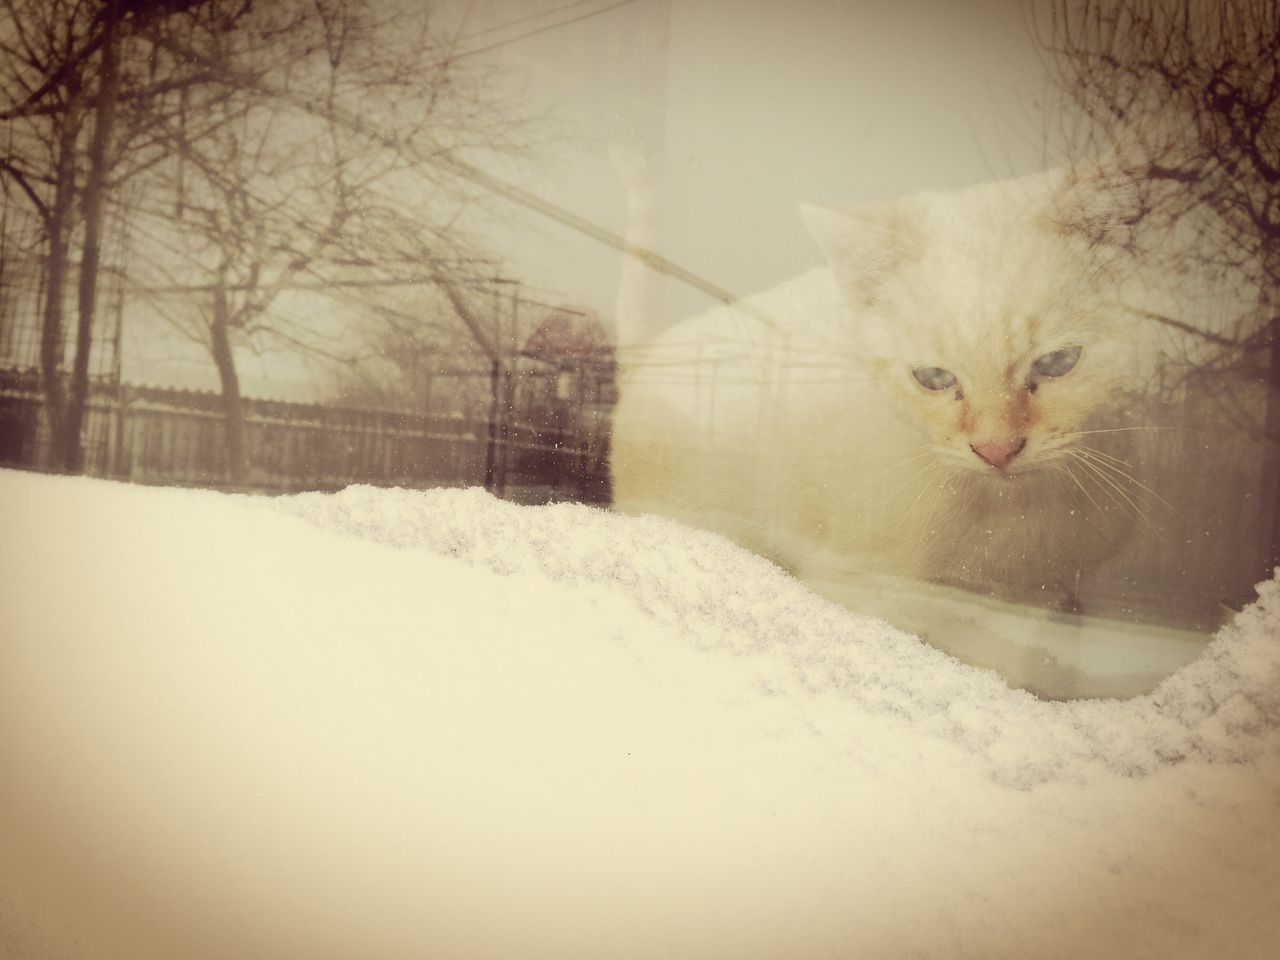 domestic cat, winter, cold temperature, snow, feline, pets, domestic animals, animal themes, nature, mammal, one animal, no people, persian cat, bleak, day, outdoors